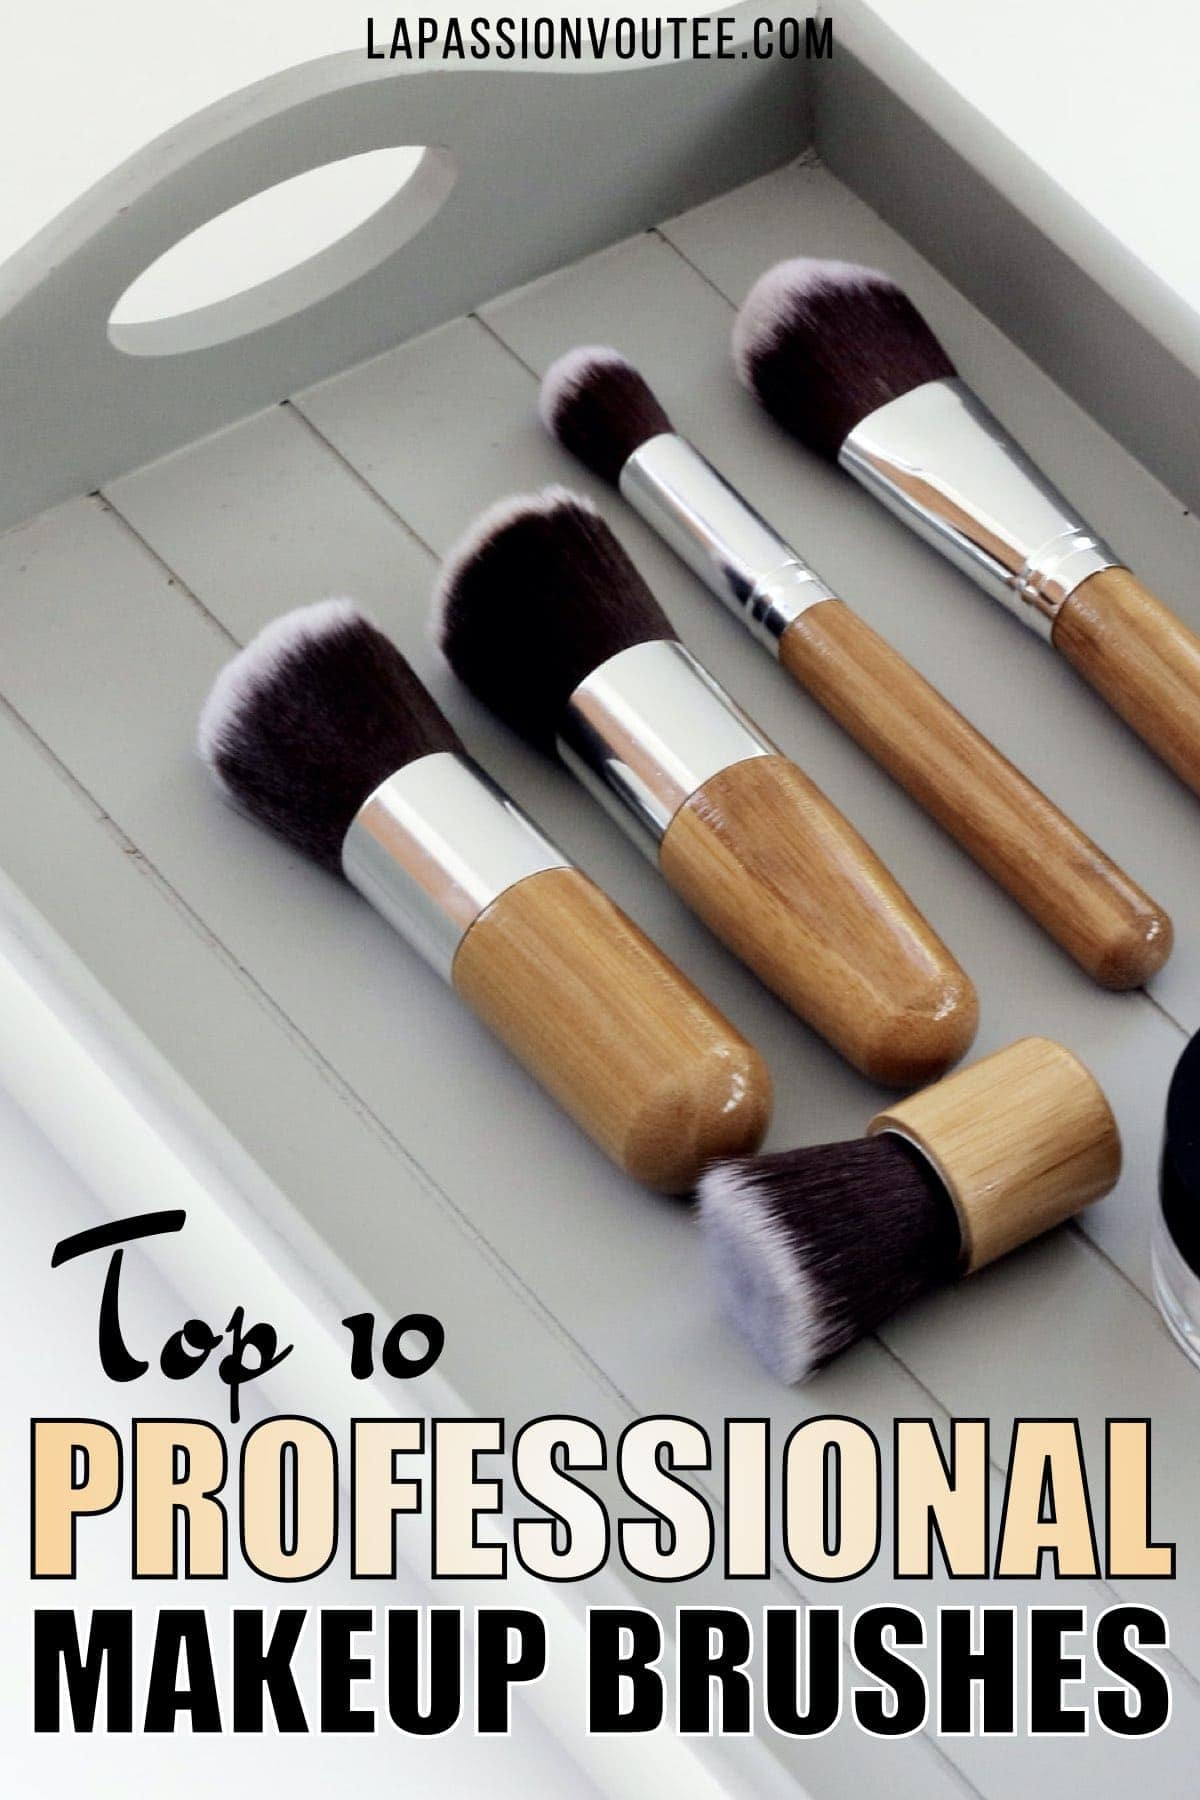 Discover the best professional makeup brush sets and best-selling on a budget. These brush kits are both amazing for beginners and awesome for professionals.